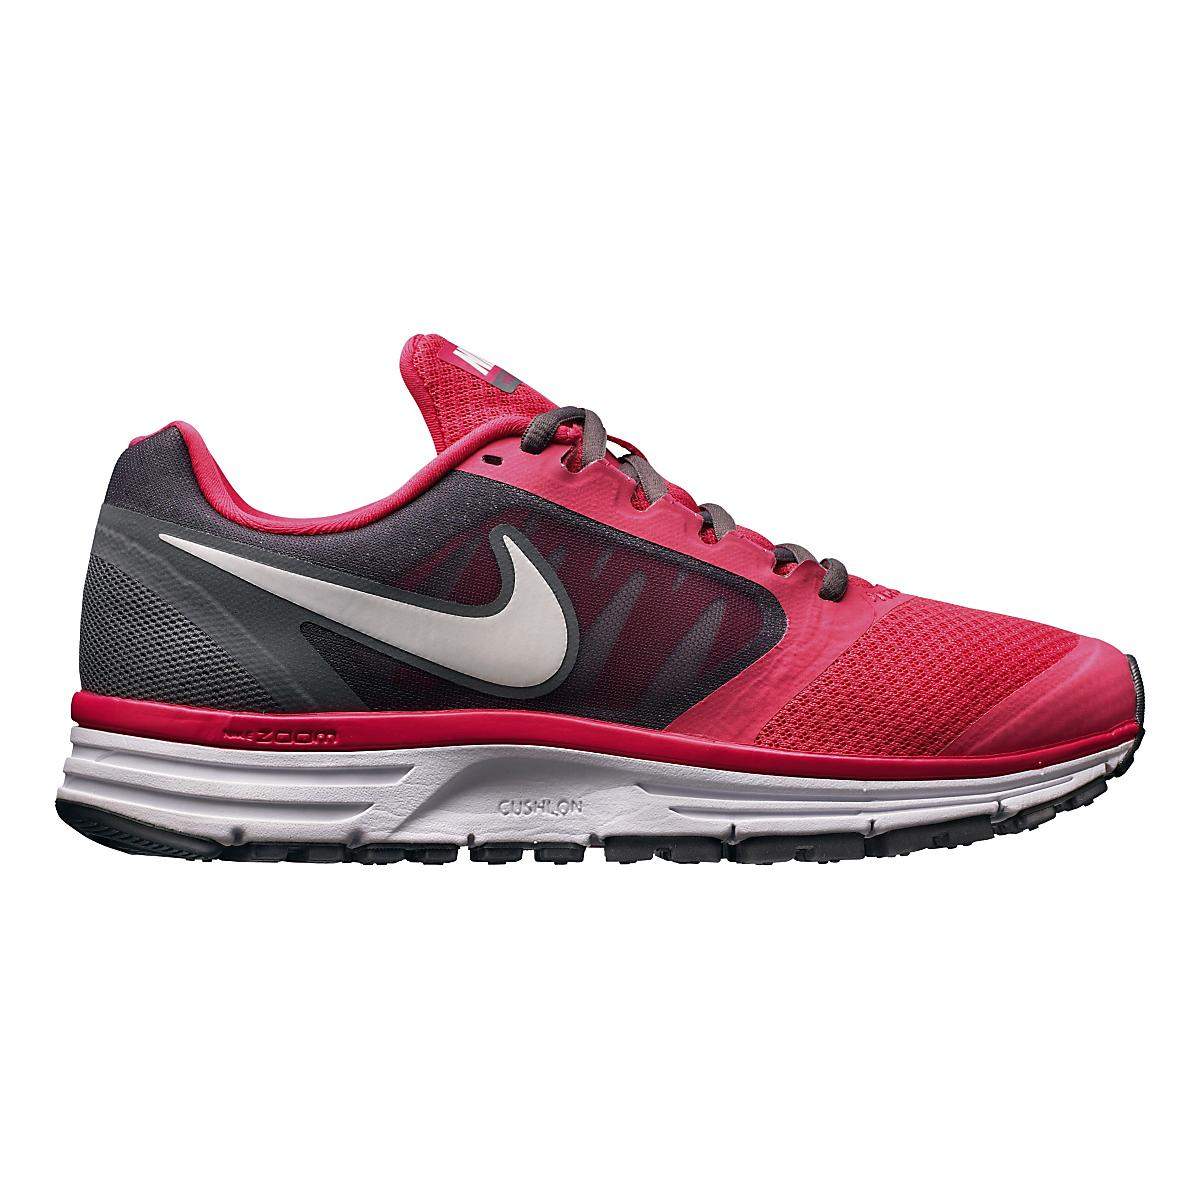 bcf442331a9 Womens Nike Zoom Vomero+ 8 Running Shoe at Road Runner Sports